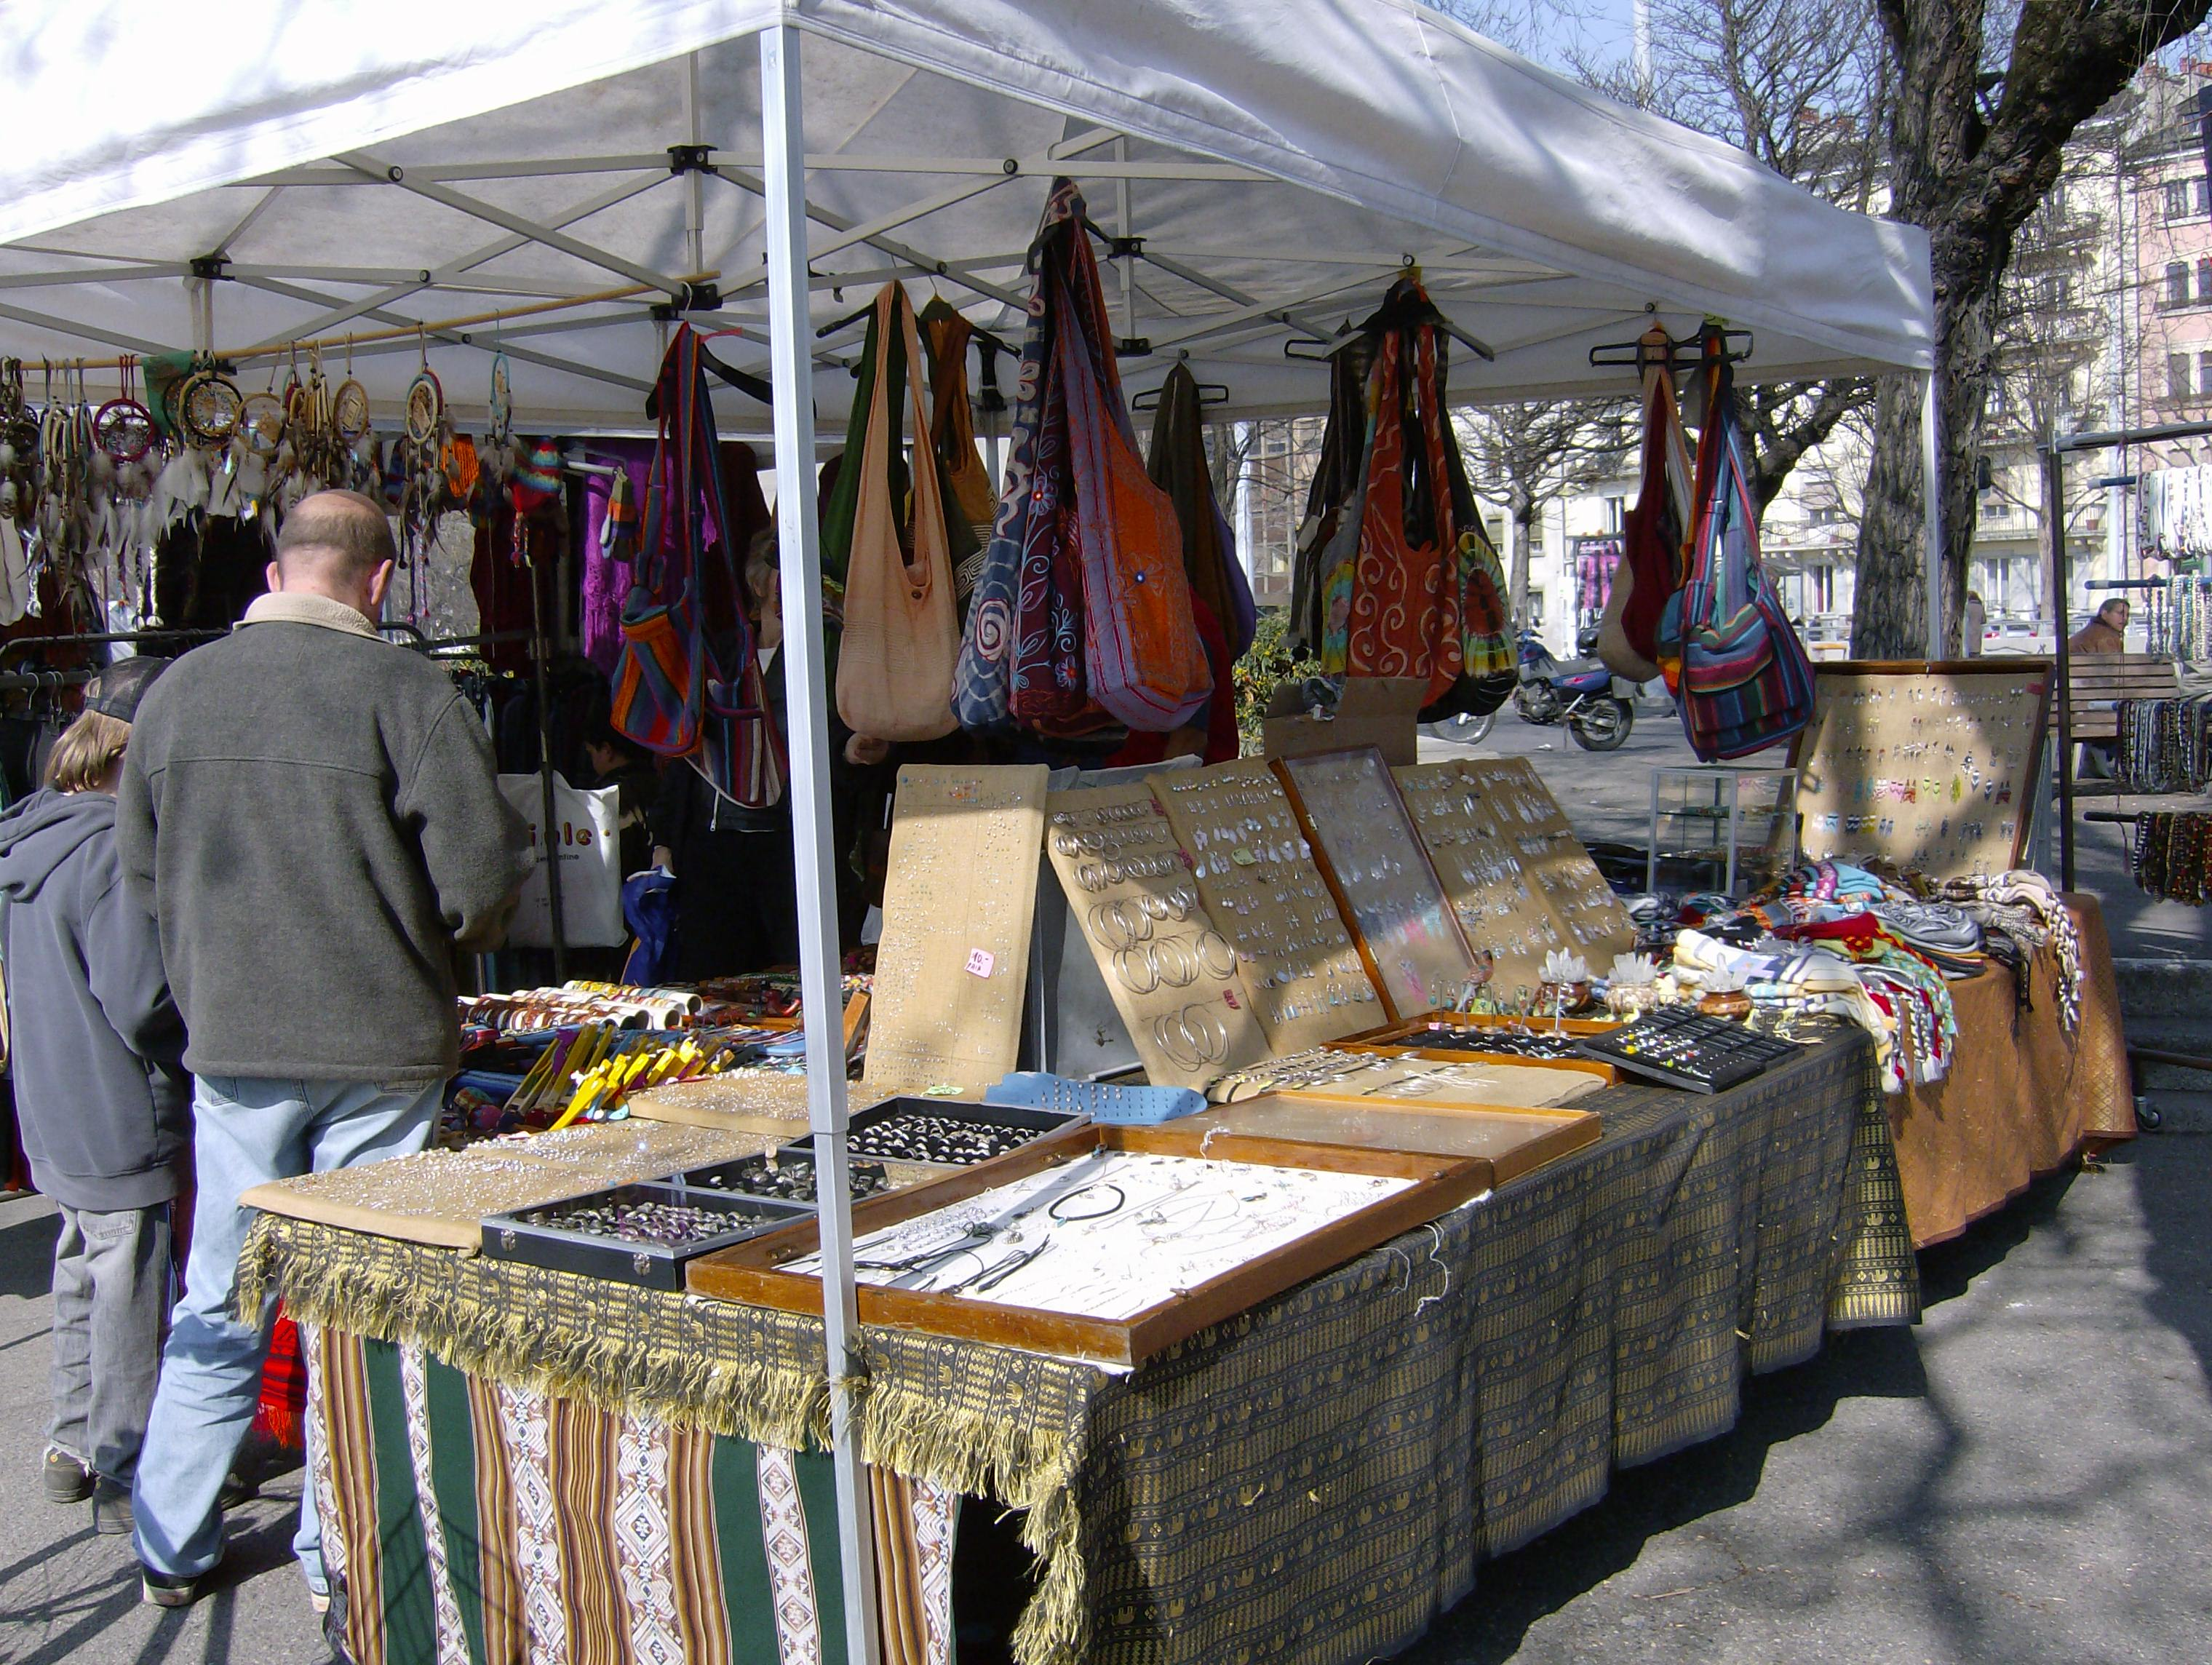 flea markets 2018 outdoor flea market schedule dates marked a & v = antique & vintage merchandise only rd = rain date vendors: click on vendor application and follow the instructions every sunday weather permitting.